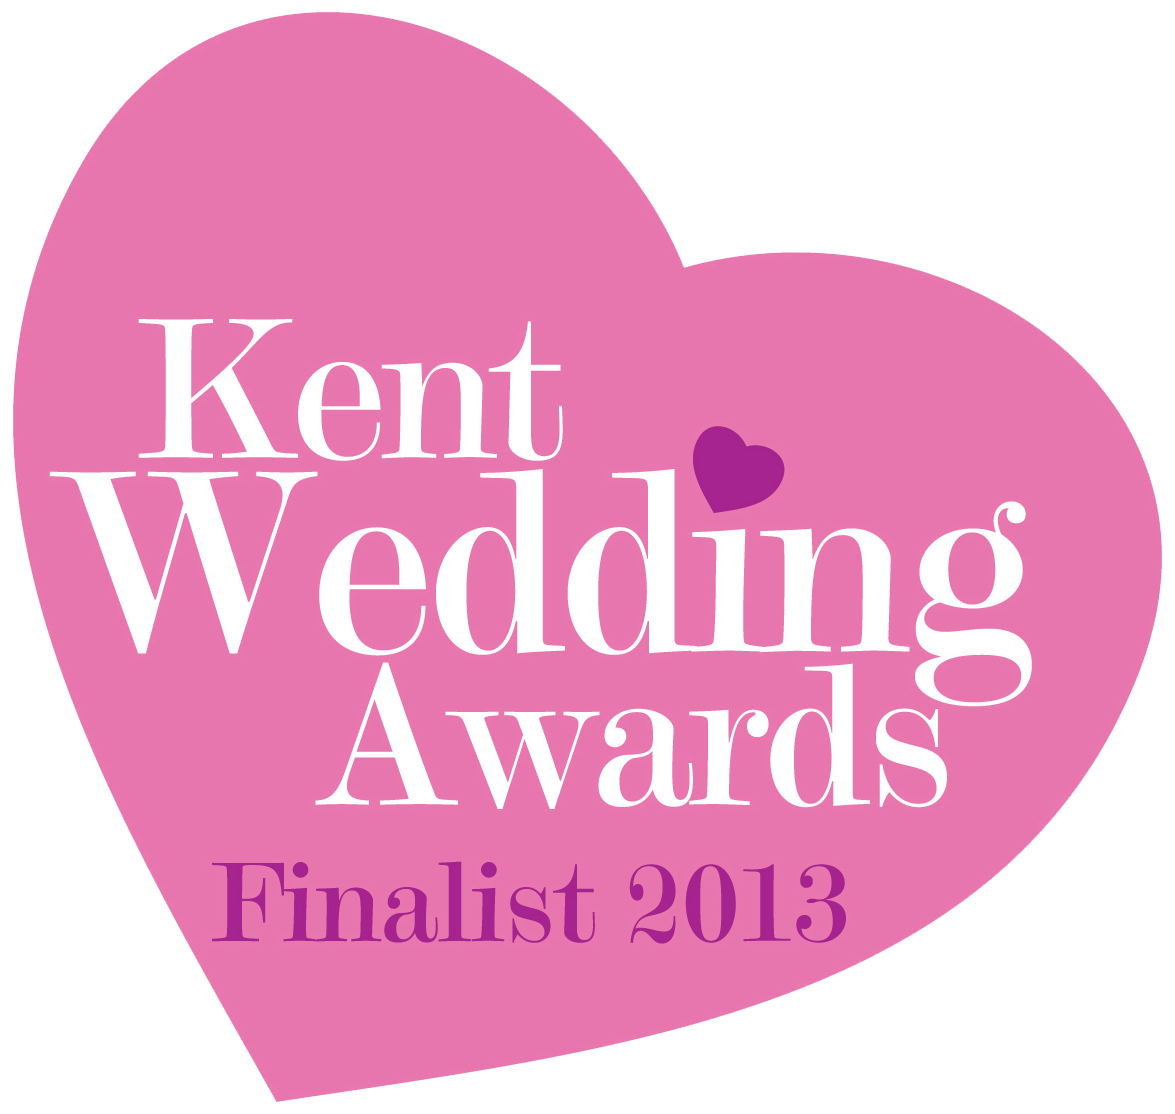 Nominated for Kent Wedding Awards